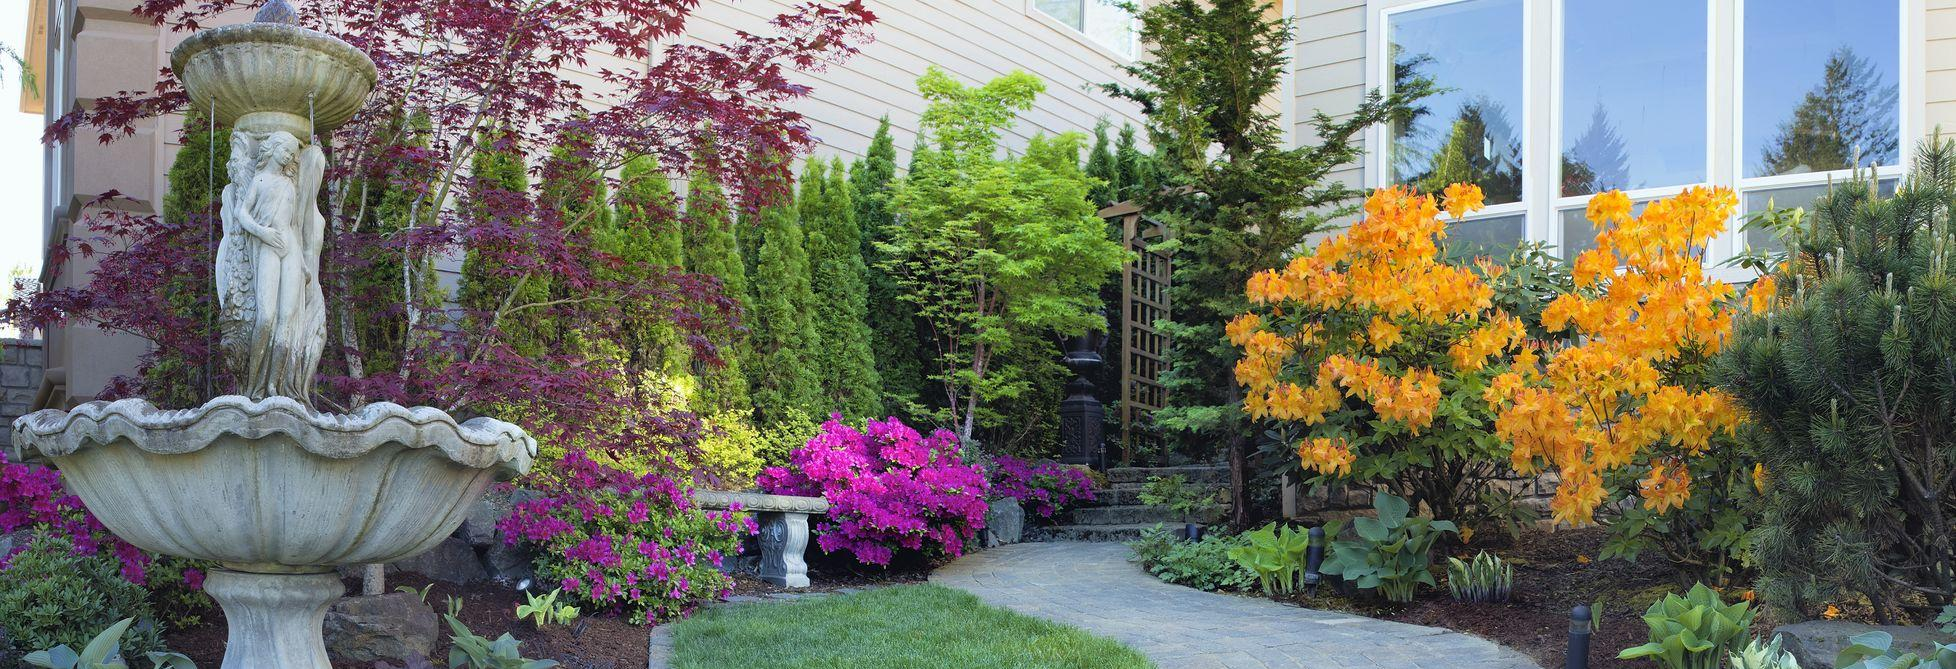 Freshen up your entrance this Spring, visit Busy Bee Garden center for all your landscaping needs.